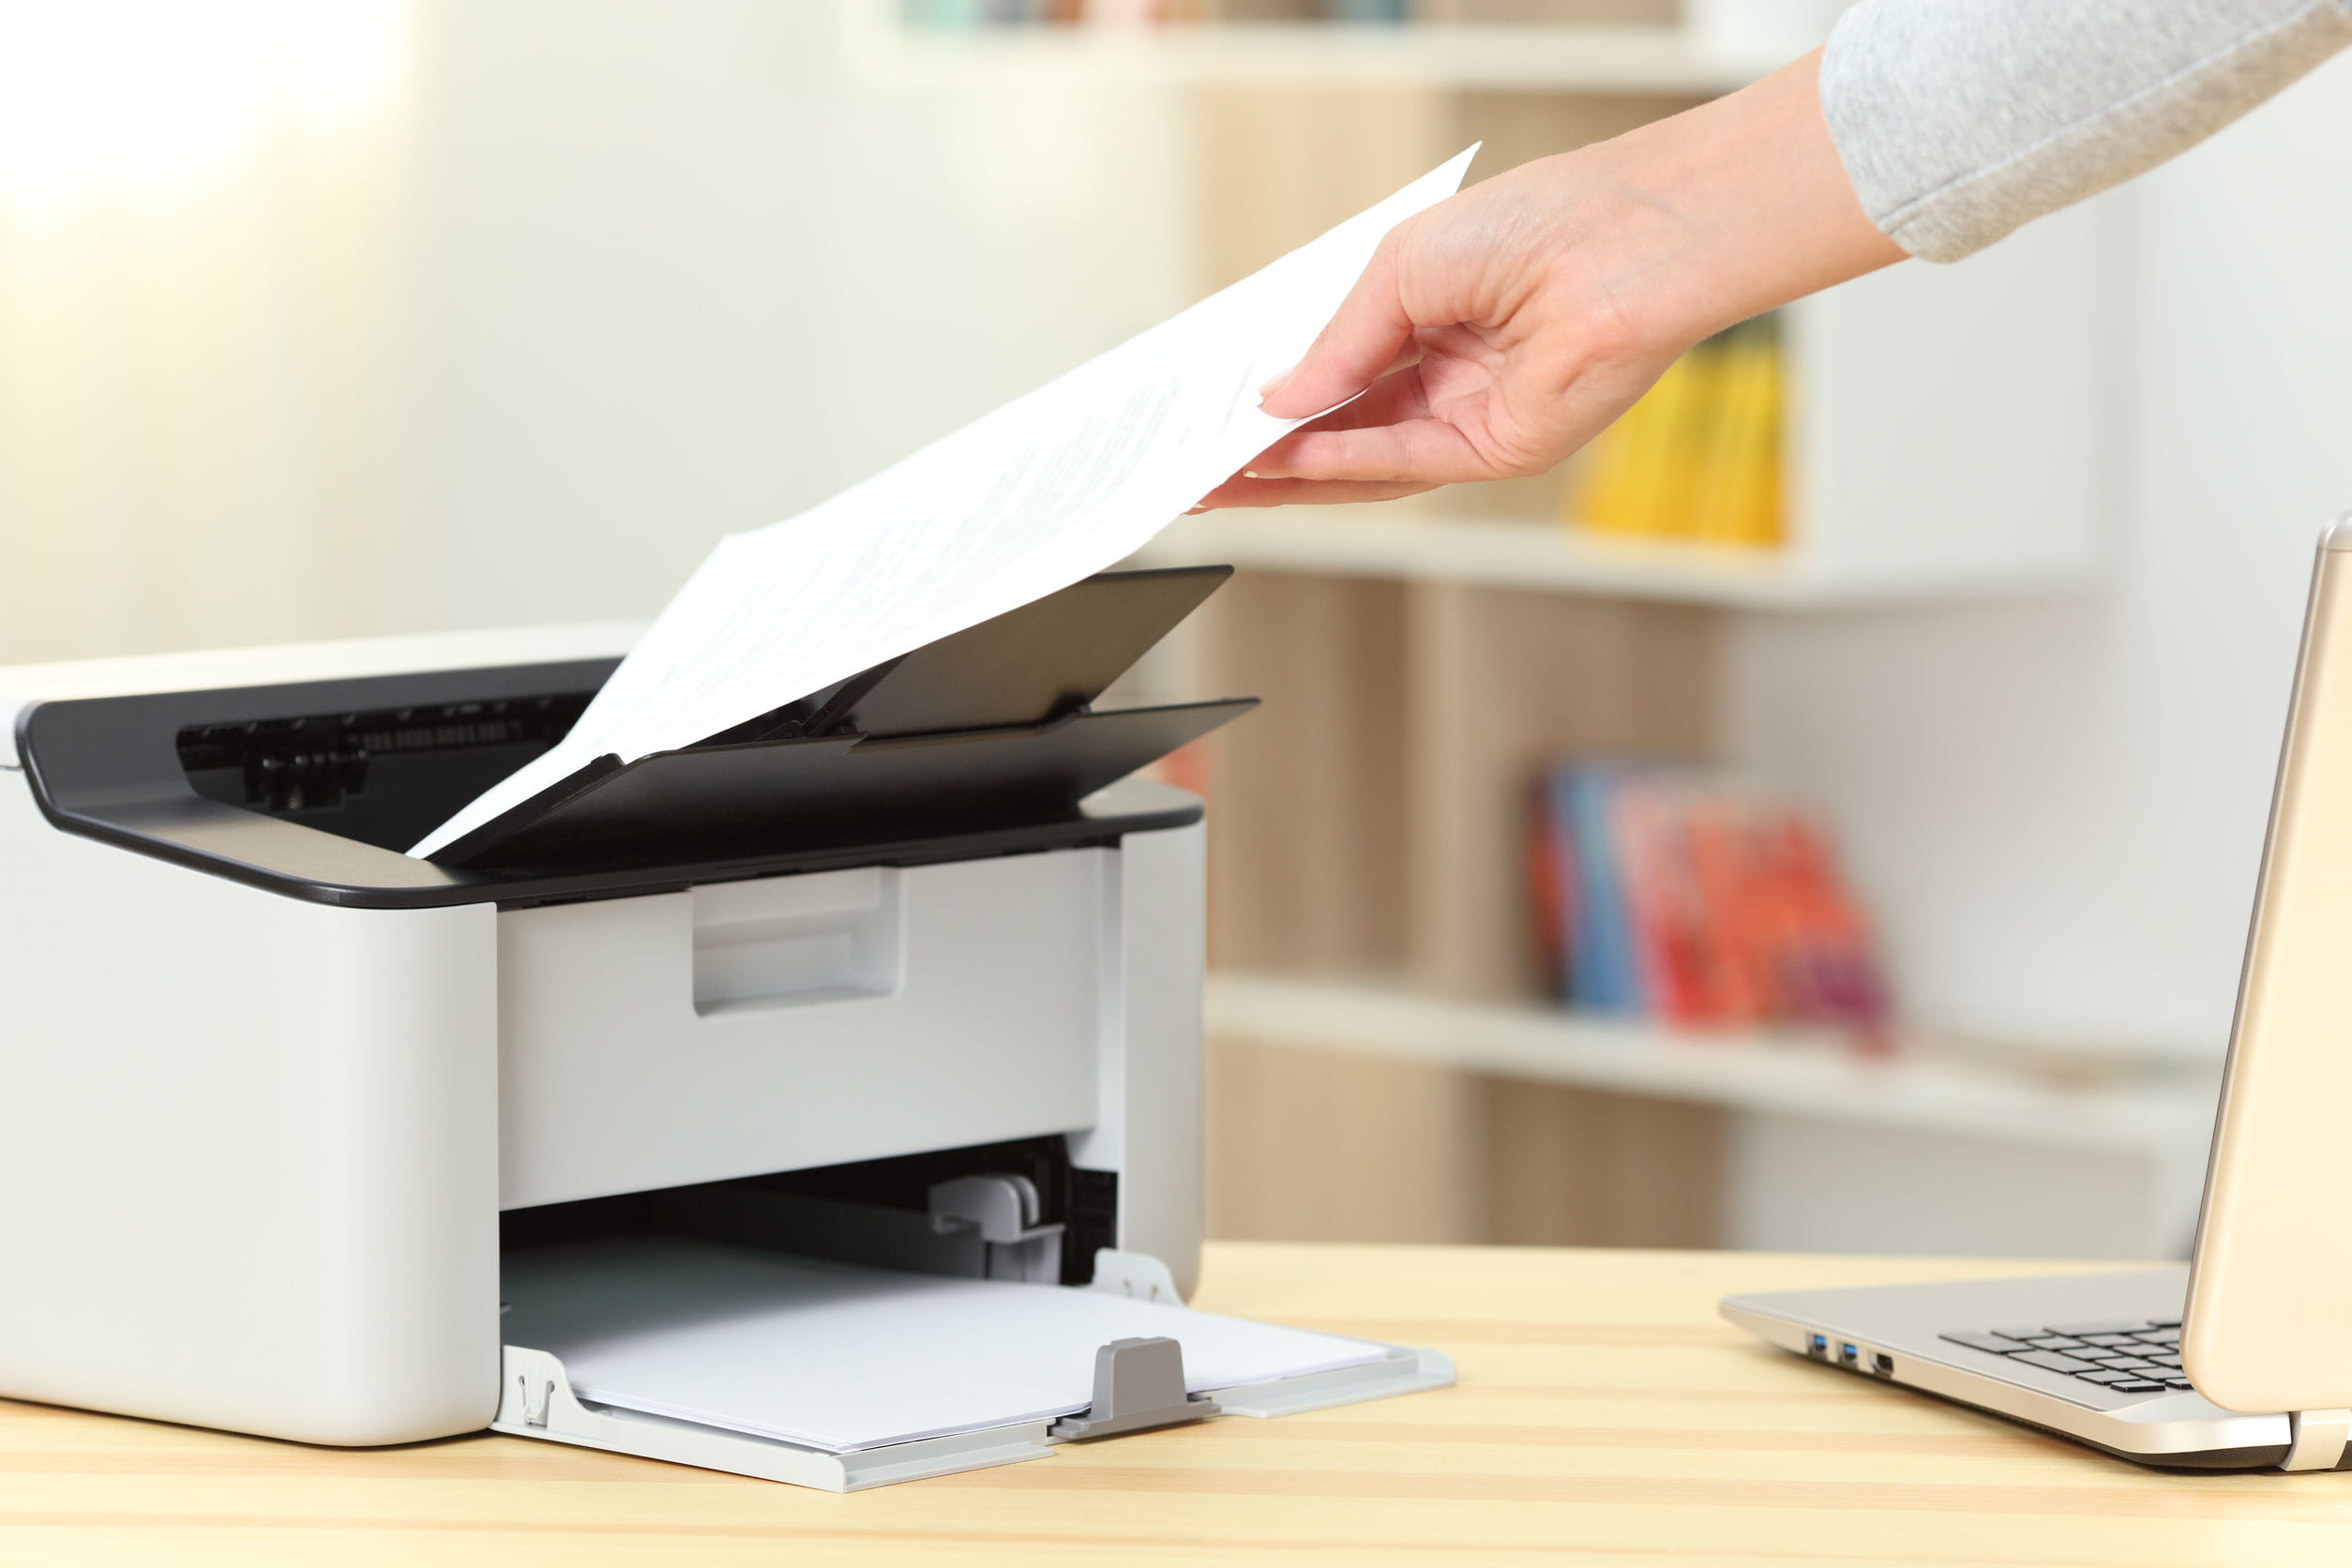 How To Install A Printer On Linux Debian Ccm